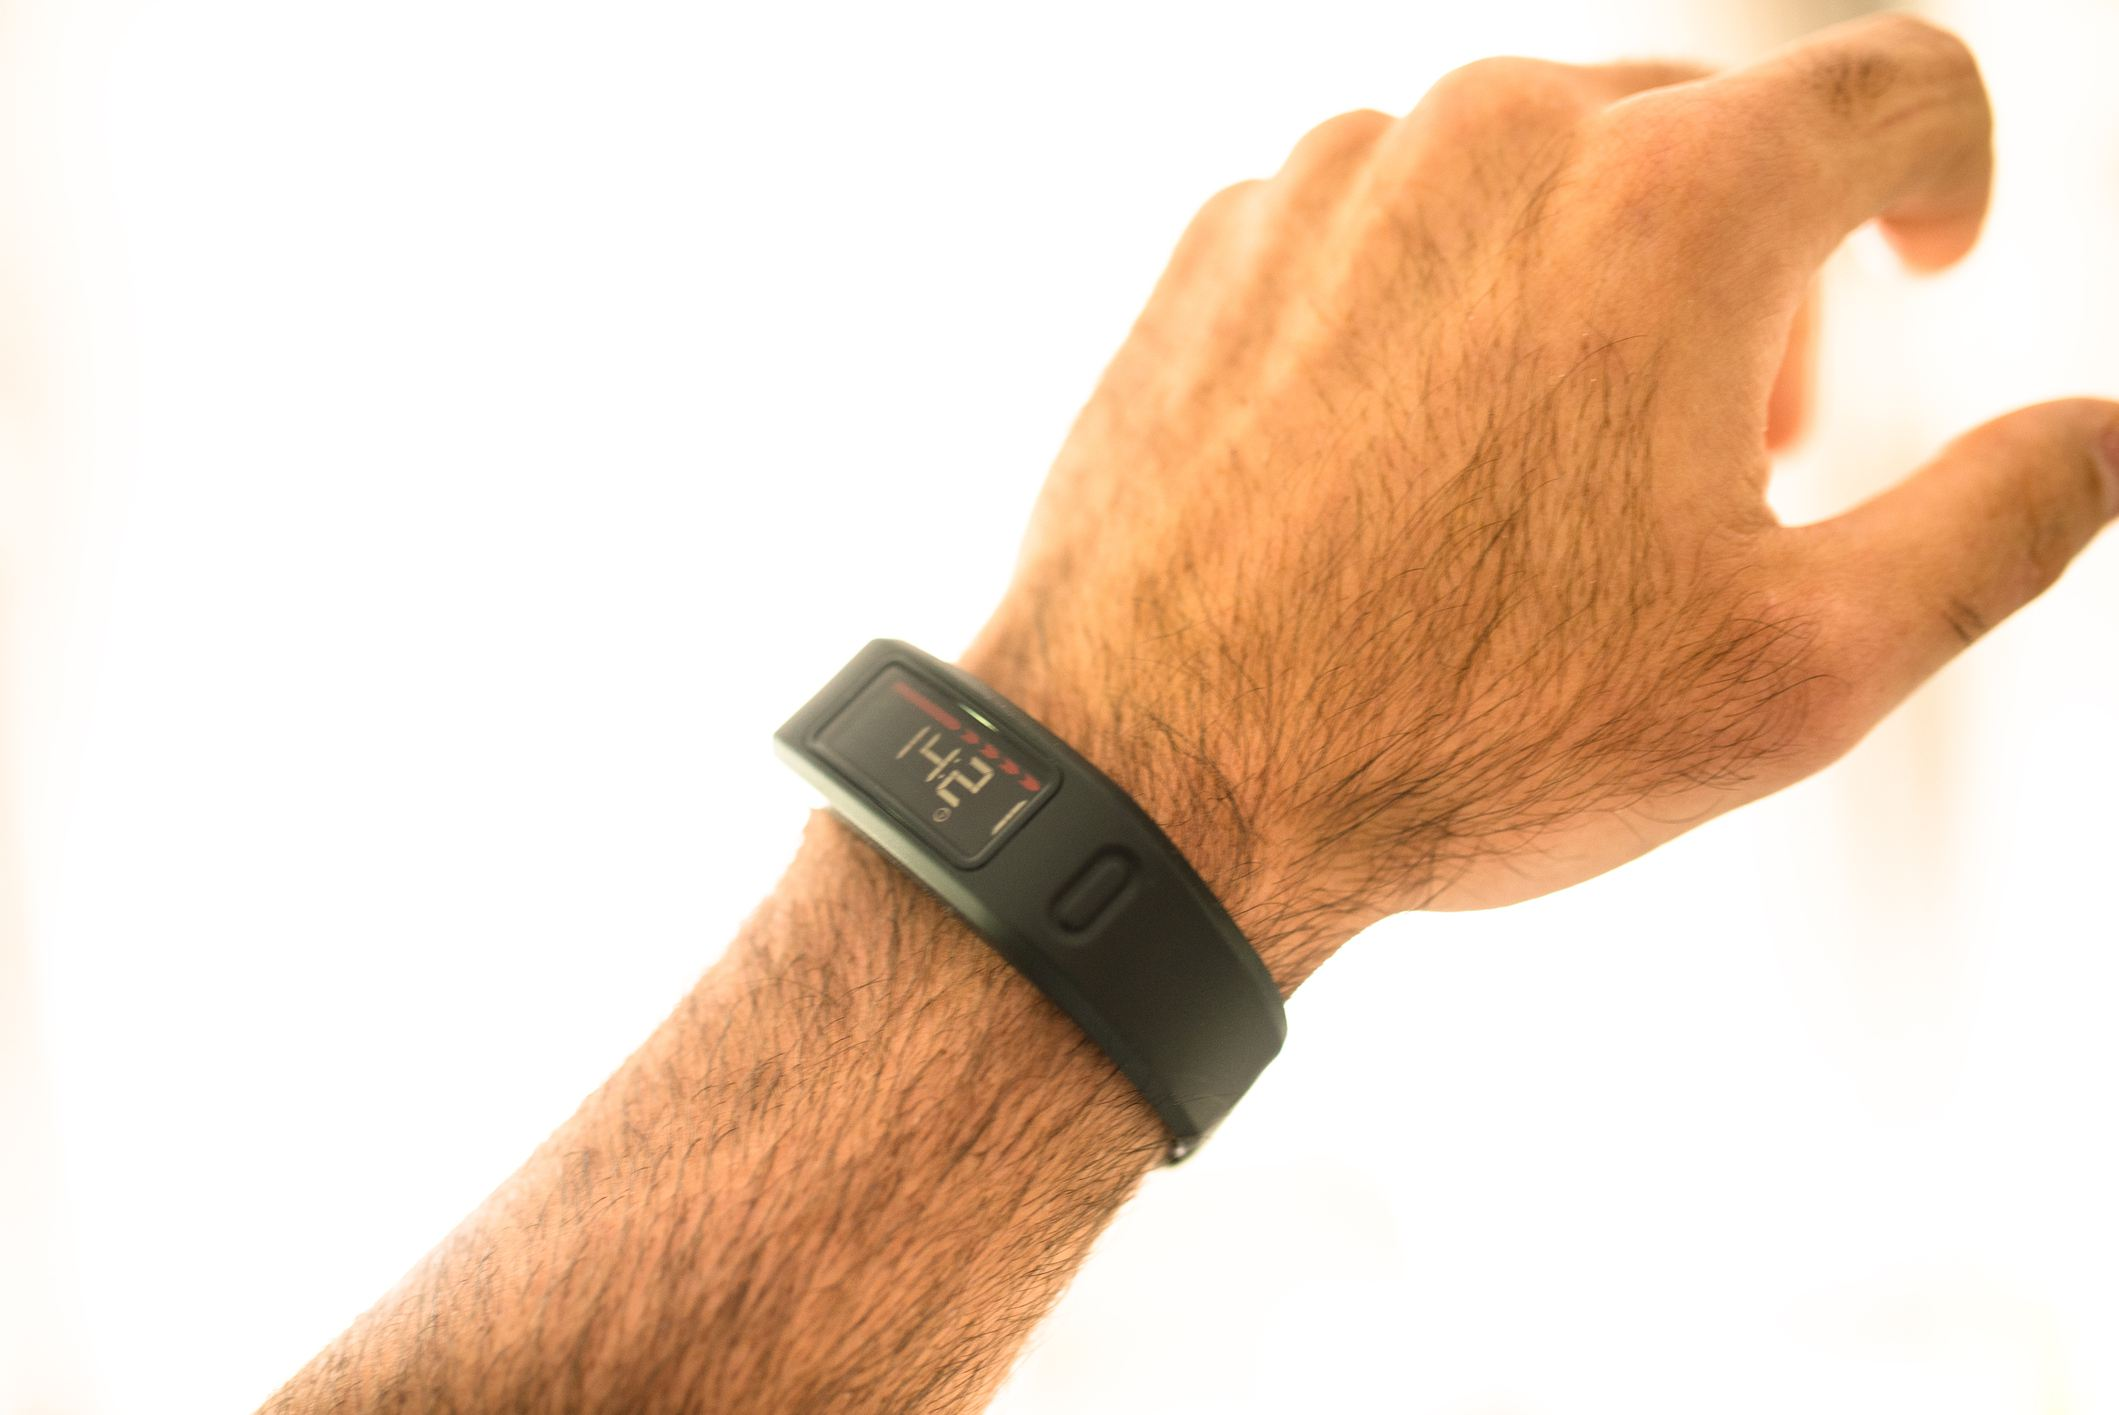 What Is a Smartwatch and What Do They Do?